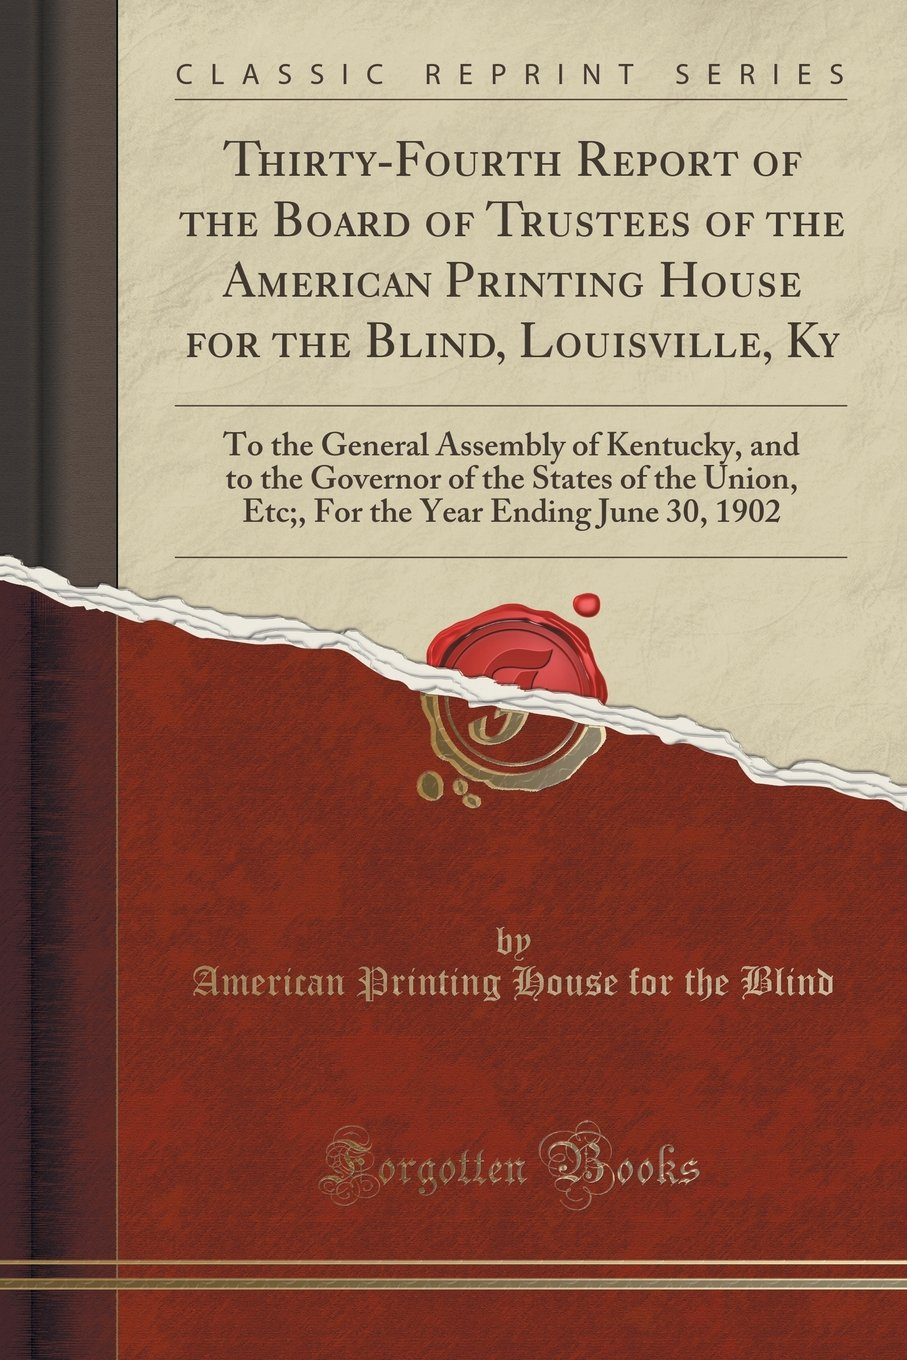 Read Online Thirty-Fourth Report of the Board of Trustees of the American Printing House for the Blind, Louisville, Ky: To the General Assembly of Kentucky, and ... Year Ending June 30, 1902 (Classic Reprint) PDF